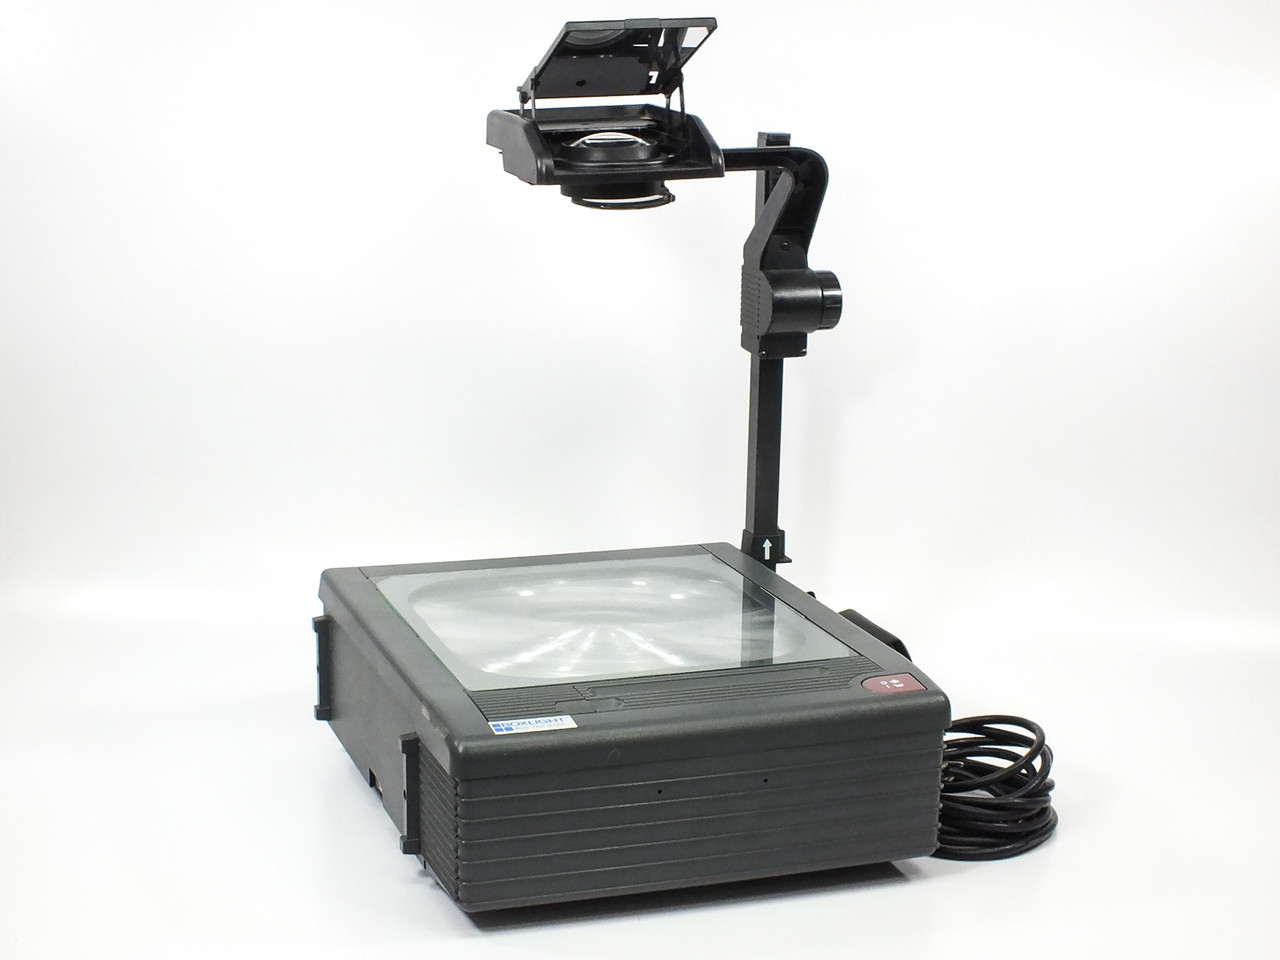 3m 9000ajj 9700 Overhead Transparency Projector With Lamp Made In 22155 W Stereo Power Amplifier Circuit Based On Ba5417 The Usa